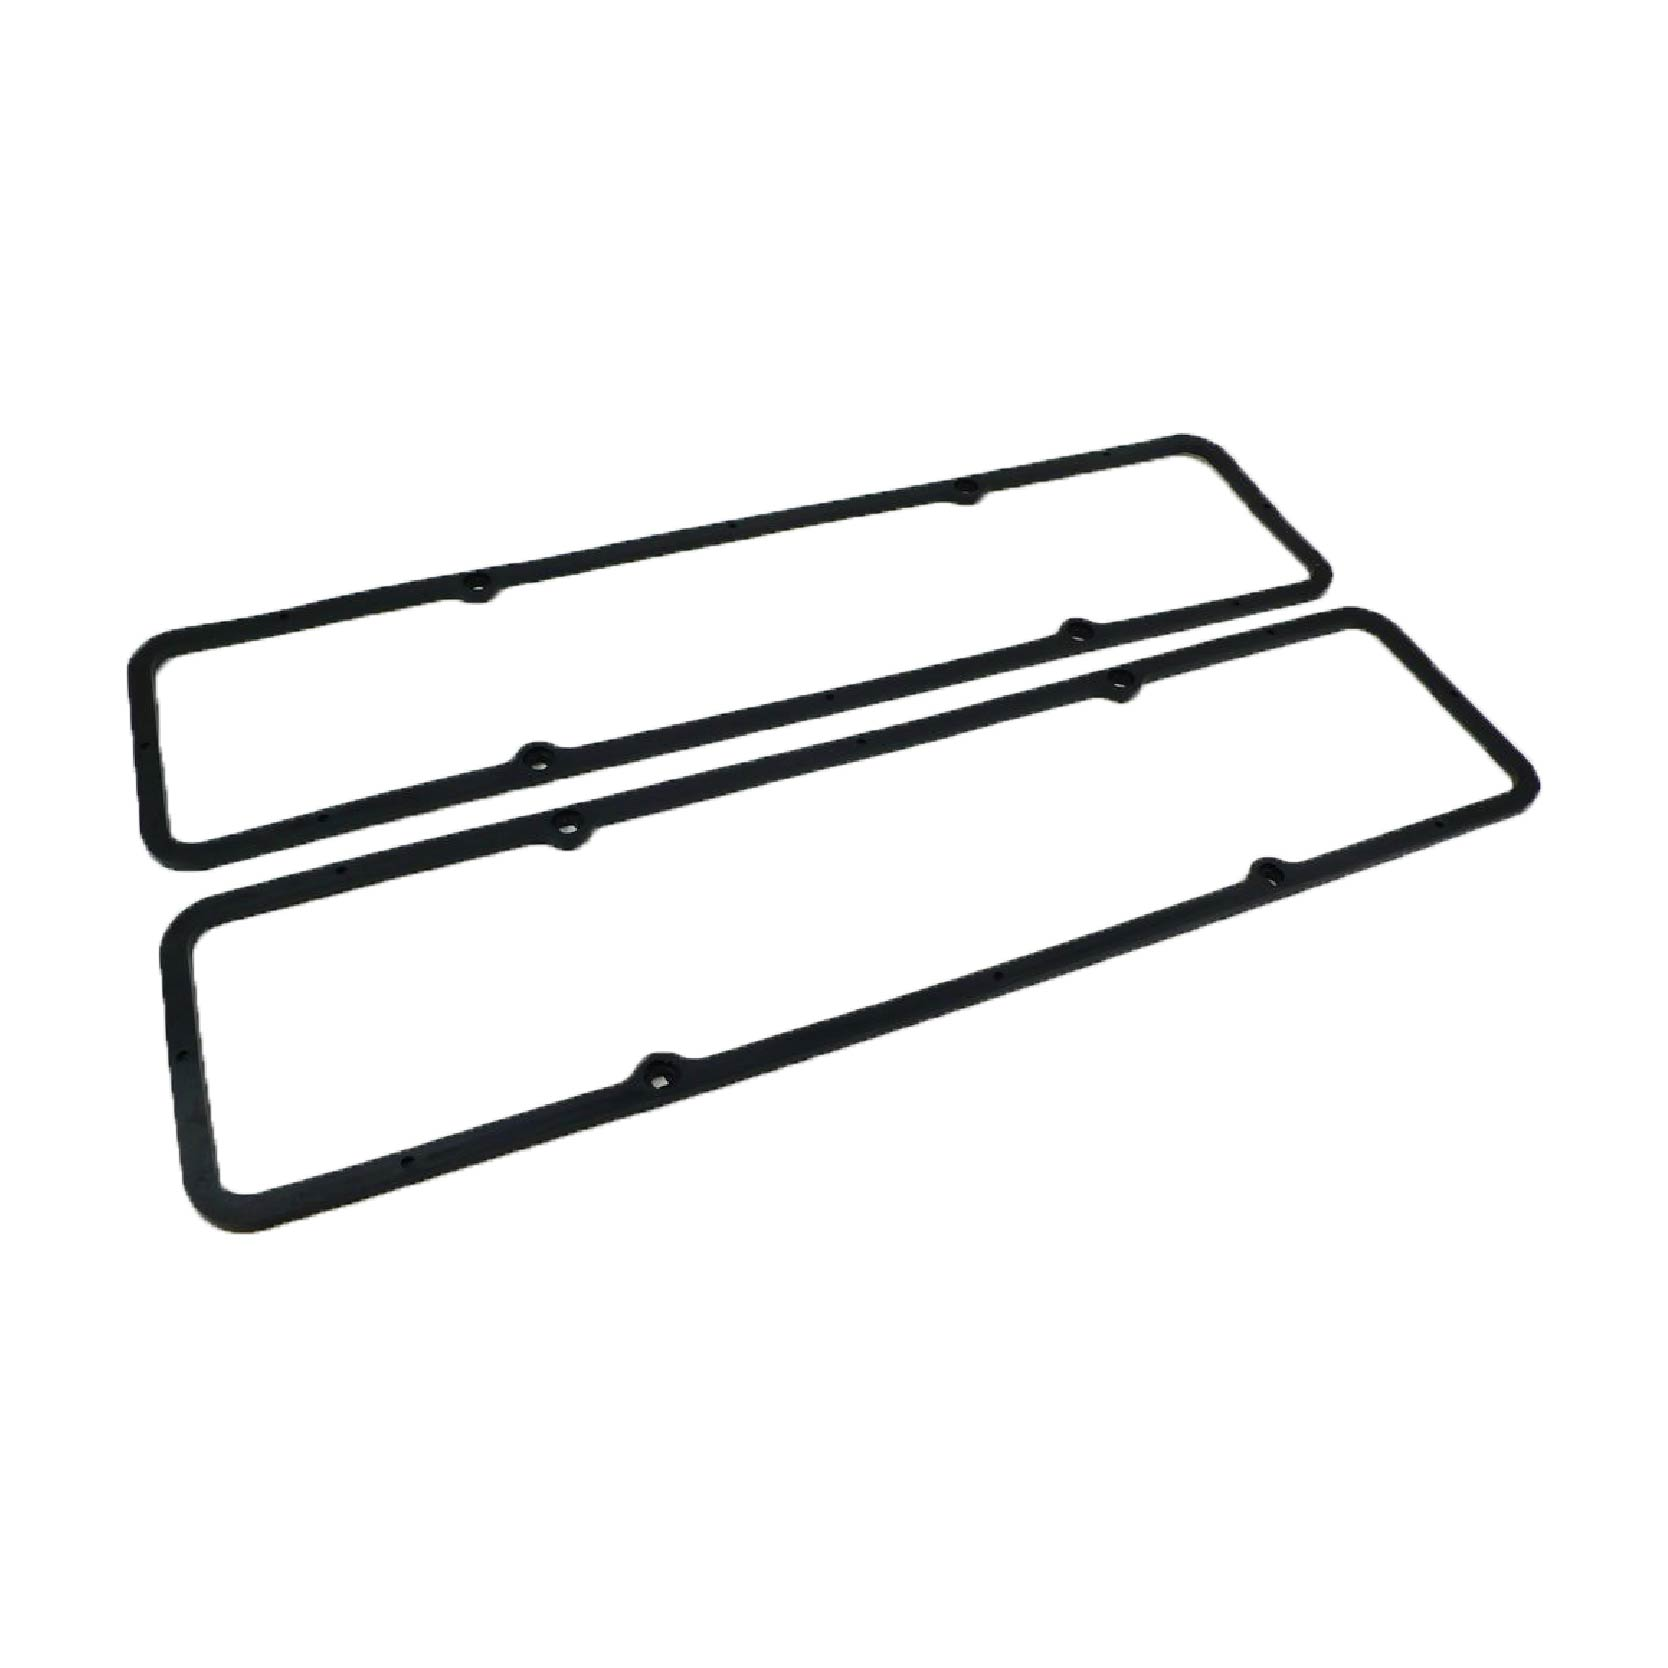 86 Small Block Chevy Valve Cover Gaskets Rubber